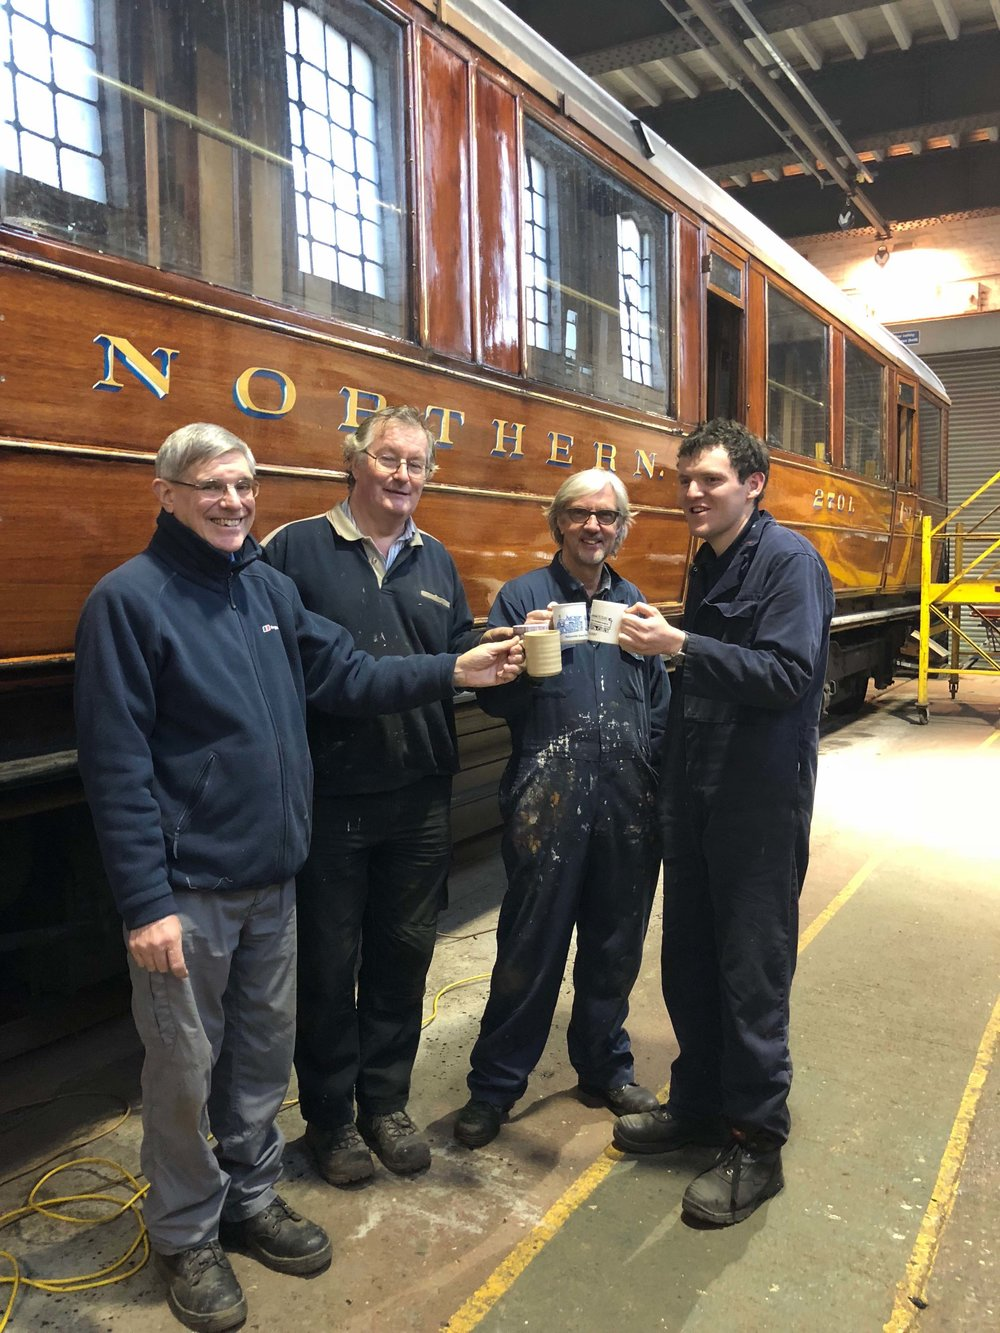 Derek Stagg, Hugh McQuade, John Beck and James Broughton celebrate the success of the £10,000 appeal during their tea break at the SVR's Kidderminster workshops. SVR